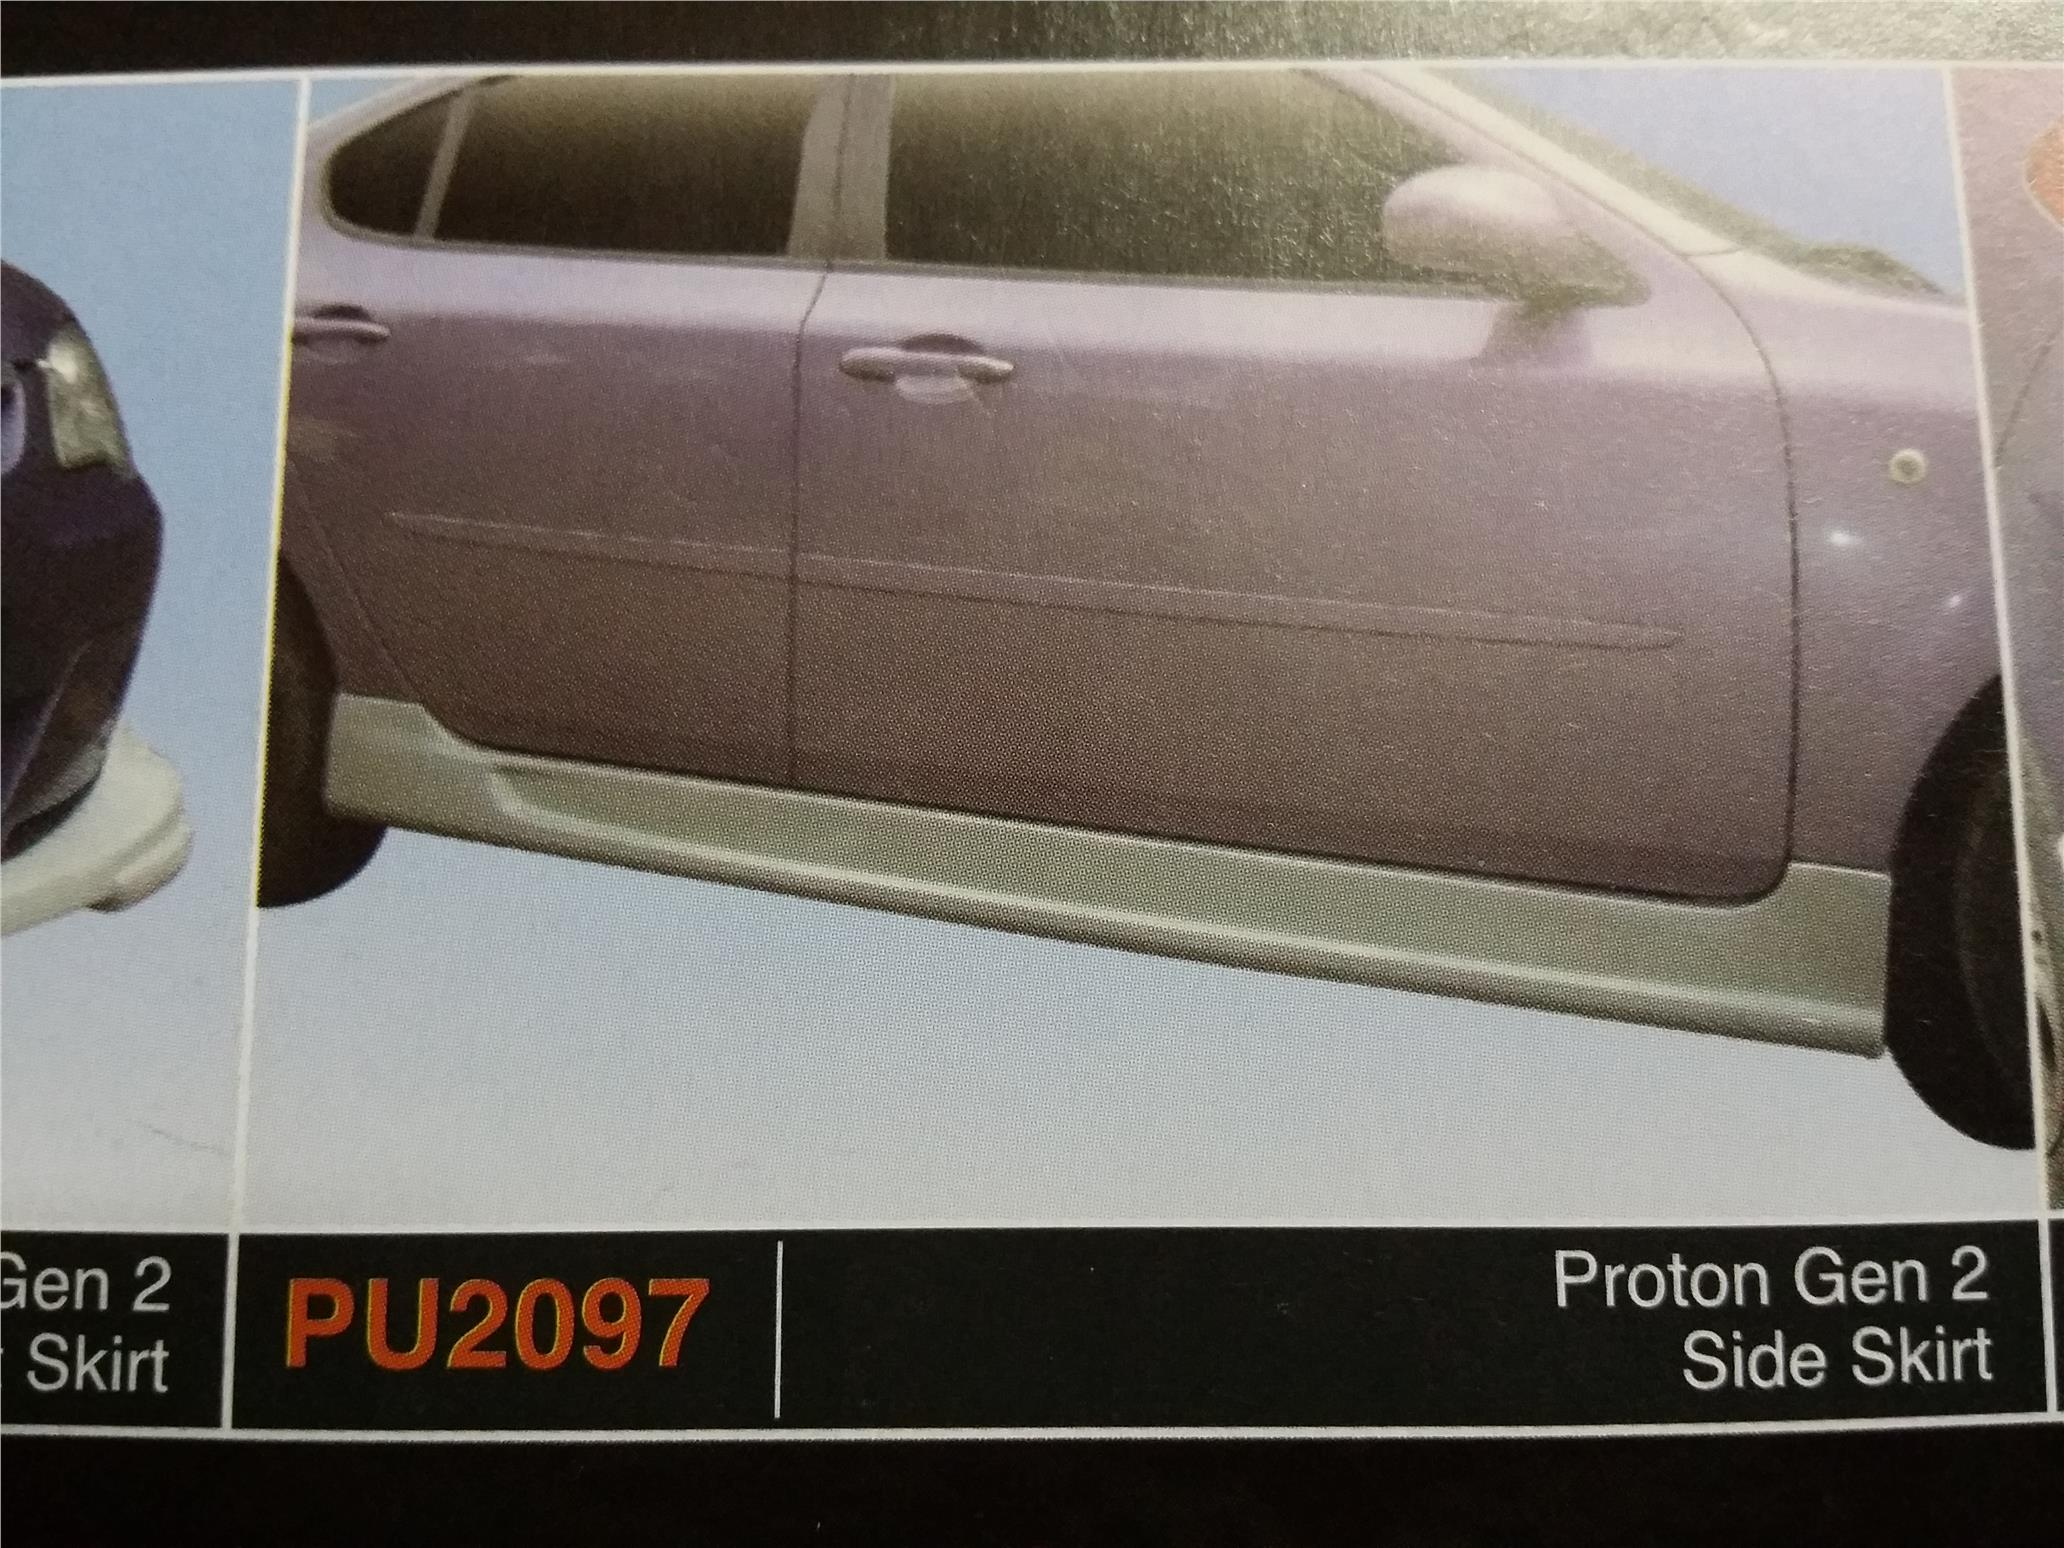 PROTON GEN 2 SIDE SKIRT